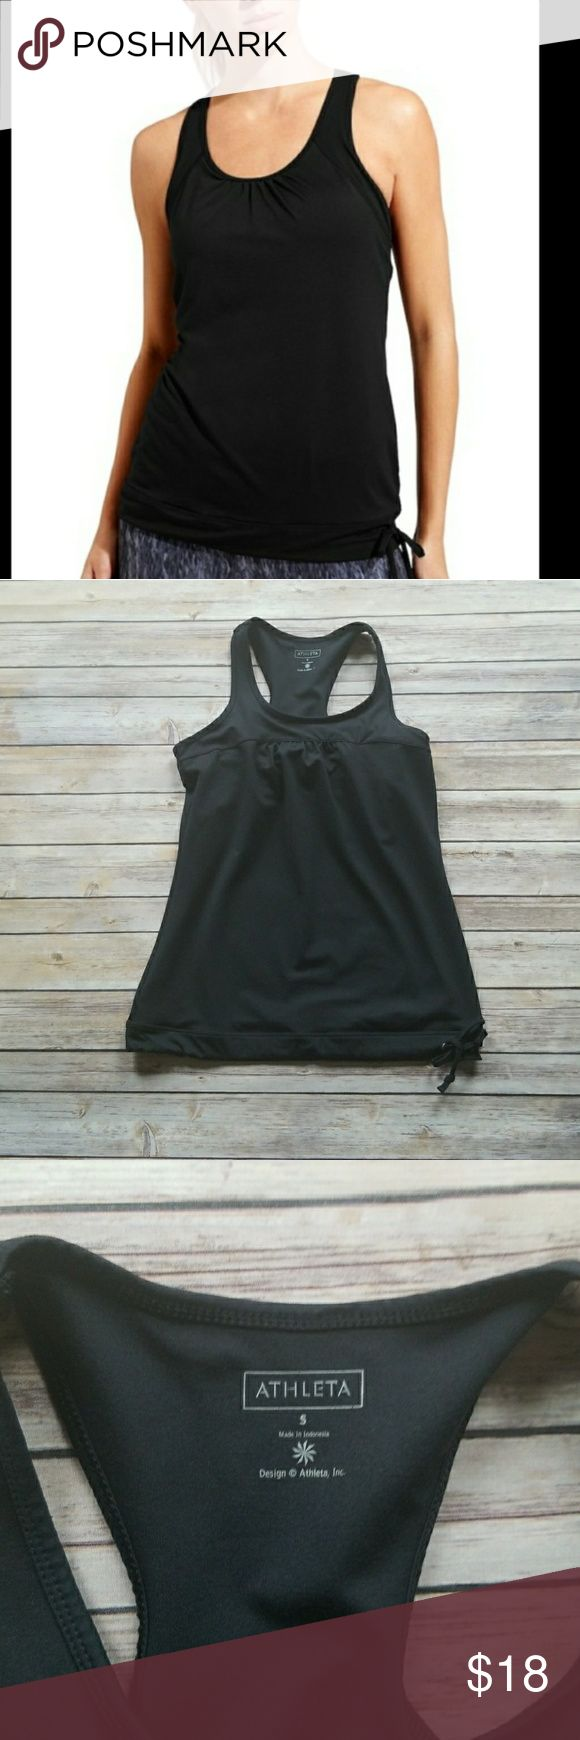 Athleta Black Razorback Tinker Tank Athleta Black Razorback Tinker Tank  *Black, razorback tank *Looser fit *Built in, breathable mesh bra support *Throw on and go sport in apparel *Great for gym/training, run, and studio workouts *Loose middle doubles as body camouflage *Banded hem *88% Polyester, 12% Lycra. Bra: 93% Polyester, 7% Spandex *Size Small *Excellent pre-owned condition. No rips, holes, stains or pulls Athleta Tops Tank Tops #runningapparel